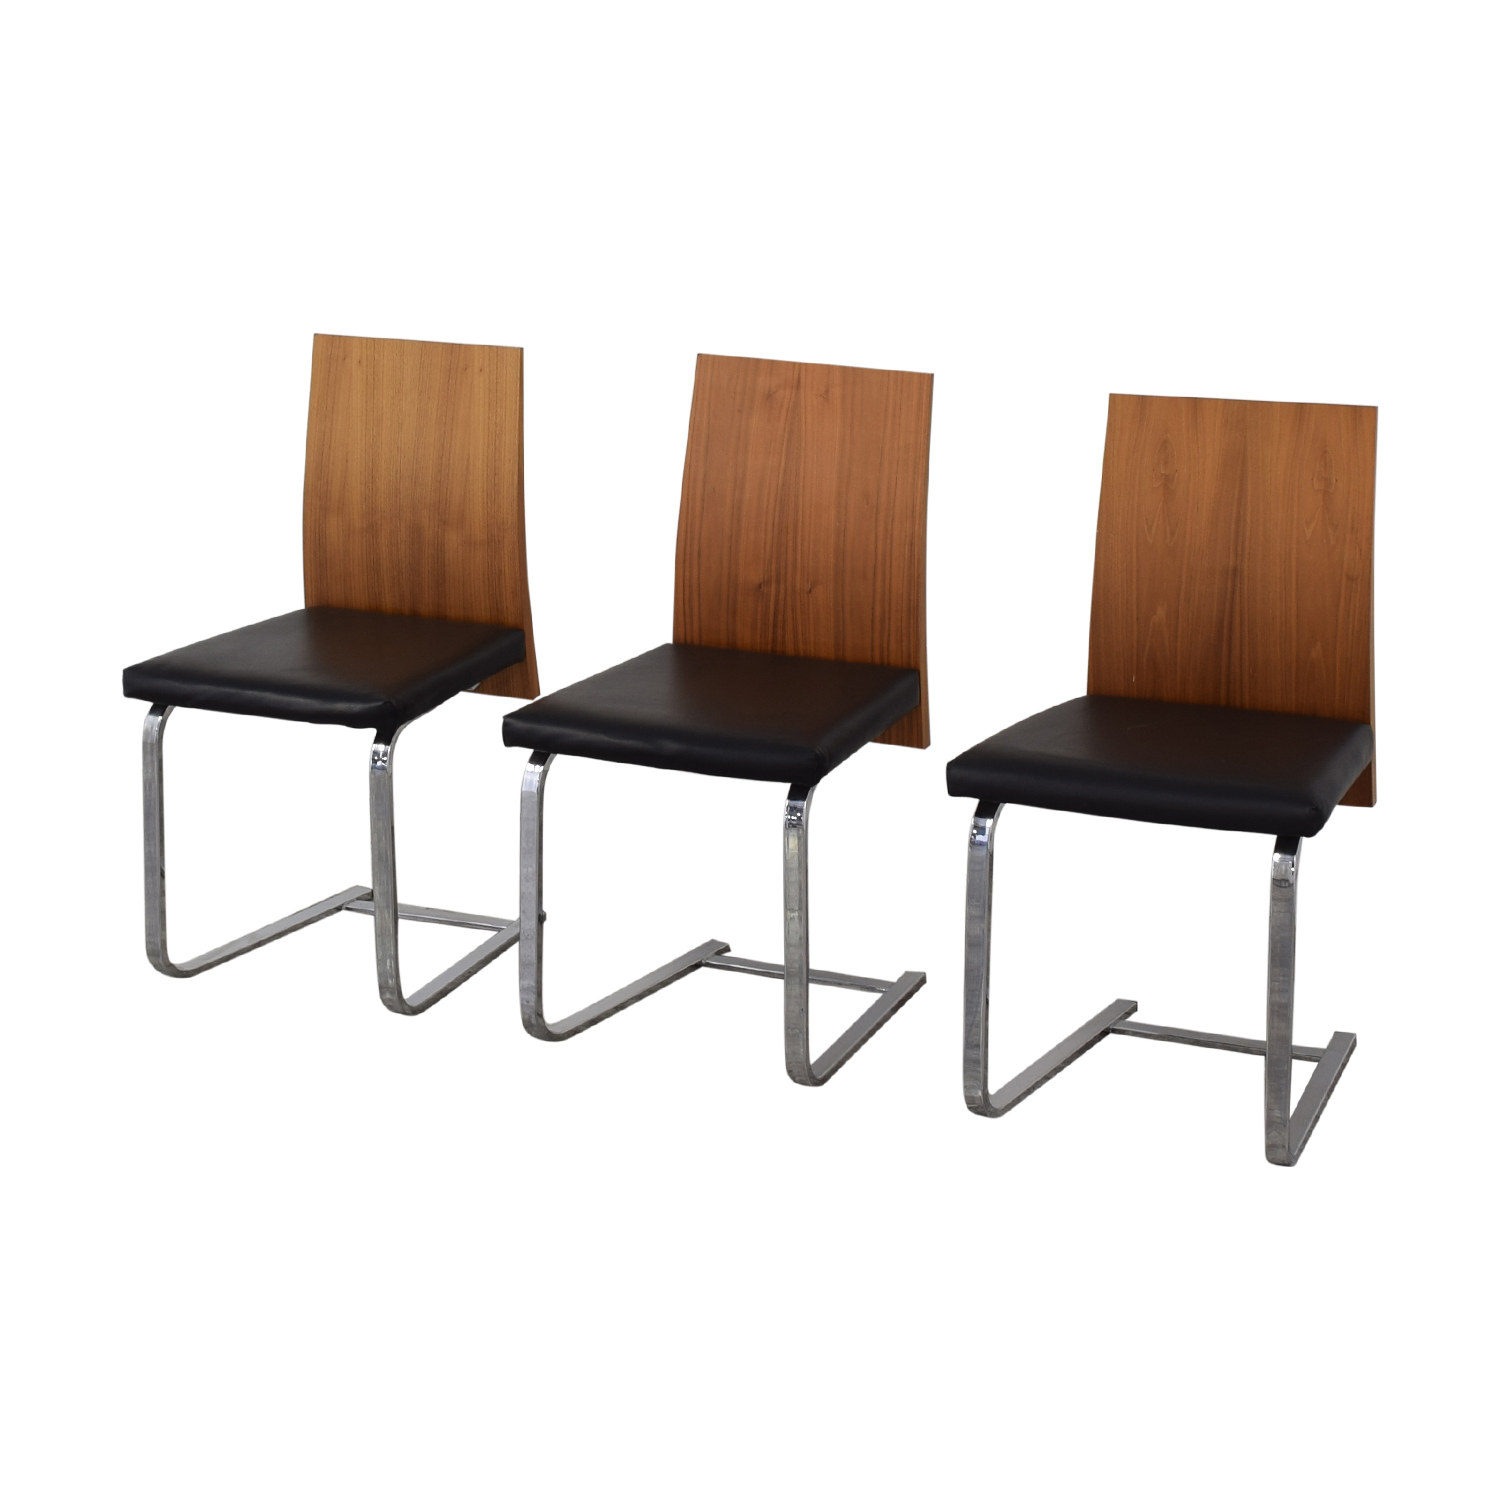 Domitalia Domitalia Jeff-sl Chrome Black Leather and Wood Dining Chairs second hand